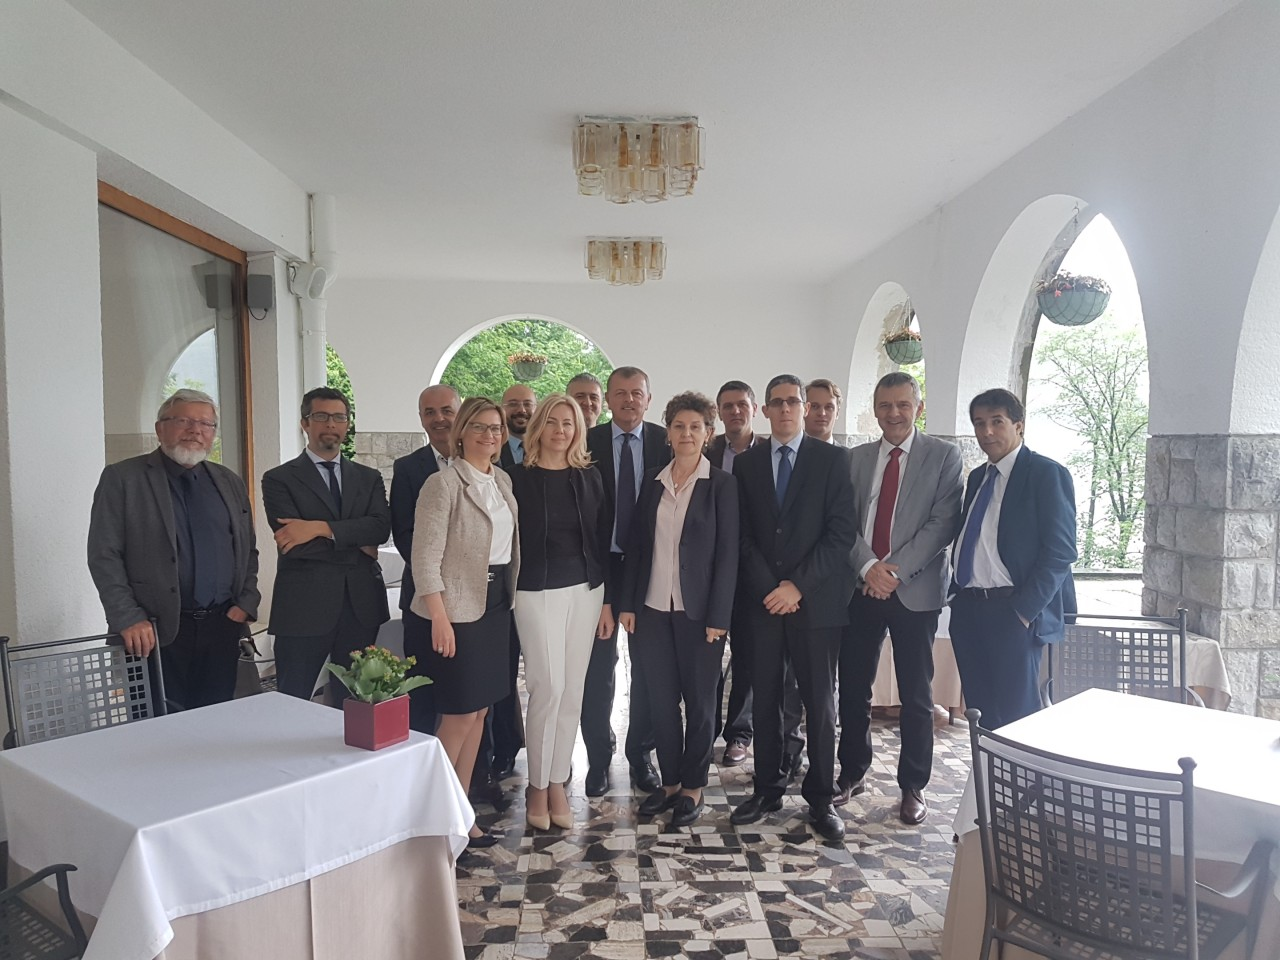 16 SG MEETING, MAY 2018, BLED, SLOVENIA